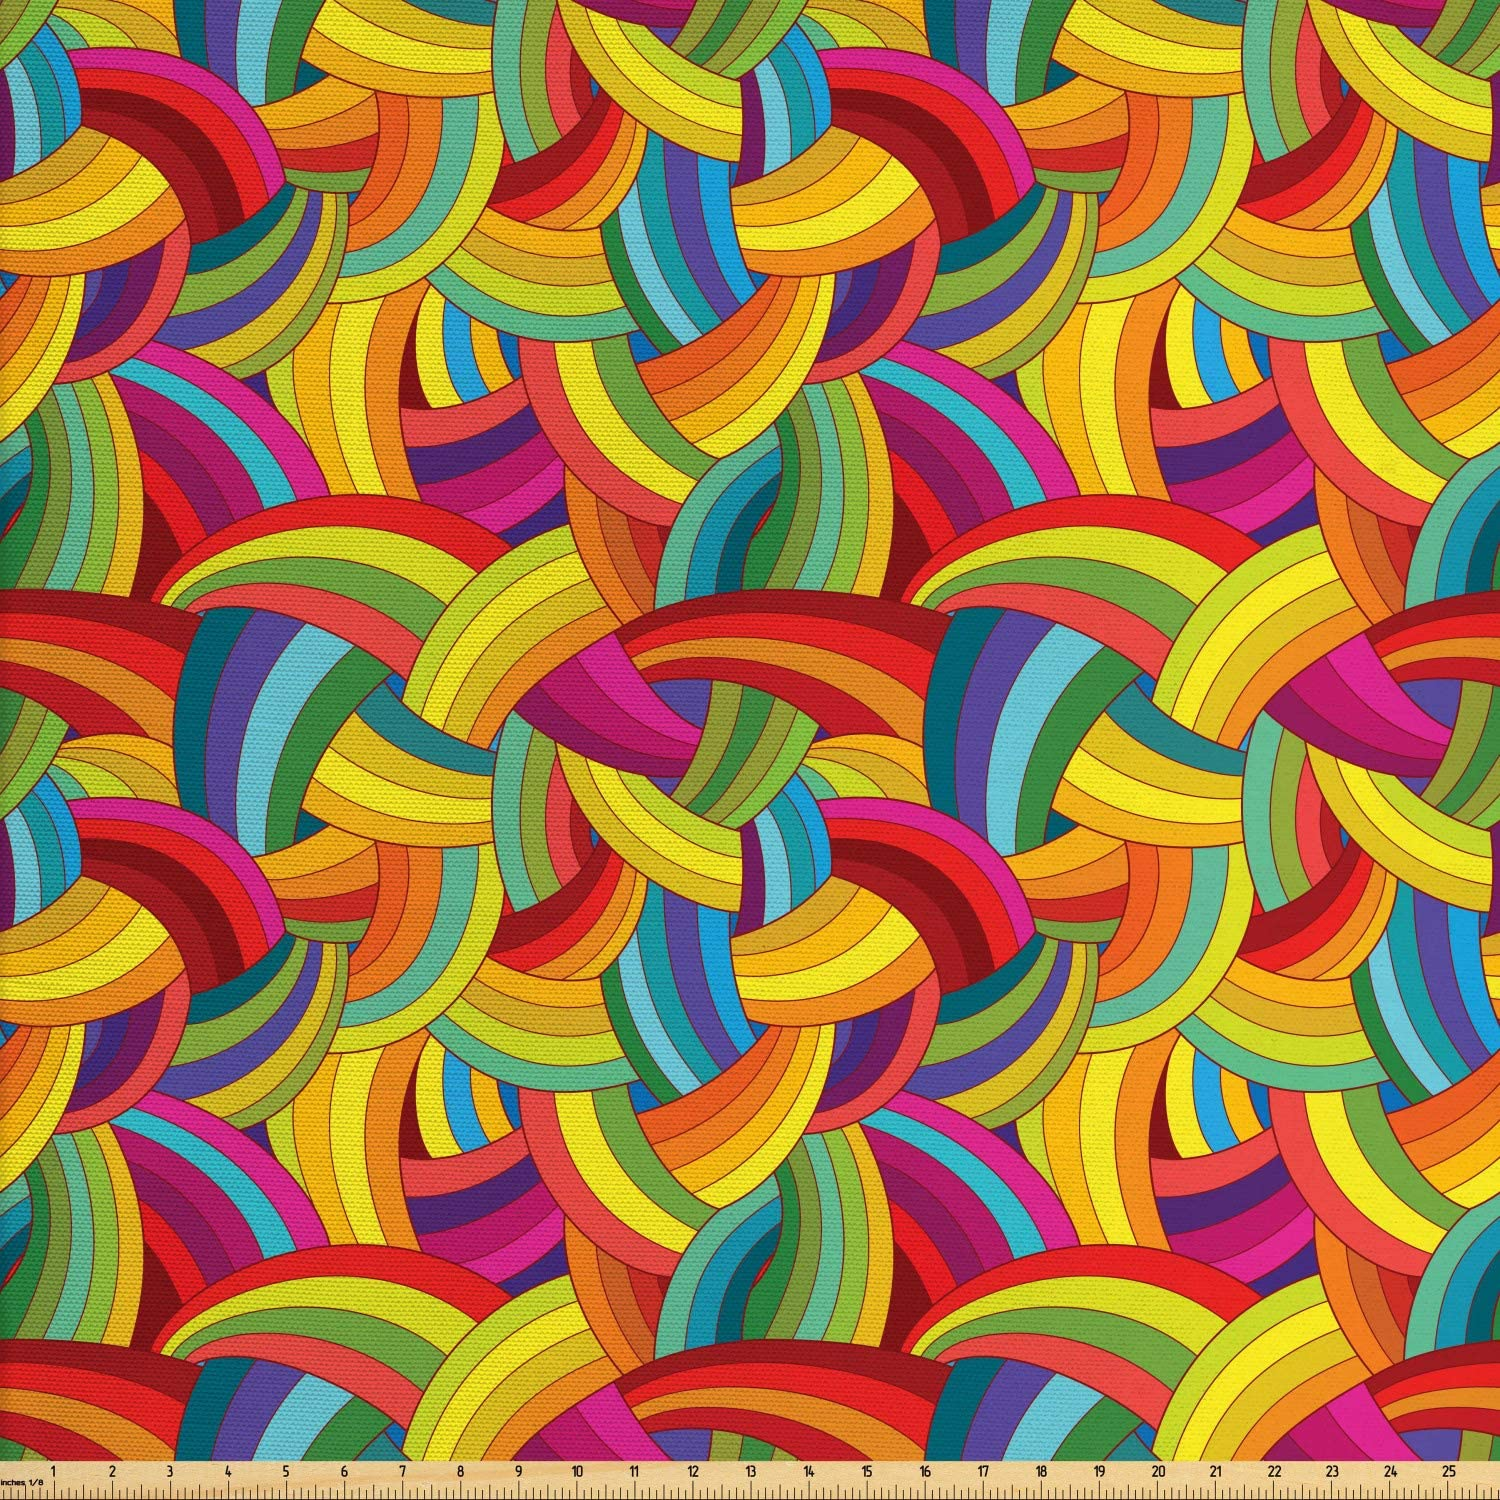 Lunarable Abstract Fabric by The Yard, Funky Rainbow Colored Psychedelic Interlace Circle Pattern Digital Retro Graphic, Decorative Fabric for Upholstery and Home Accents, 10 Yards, Yellow Magenta